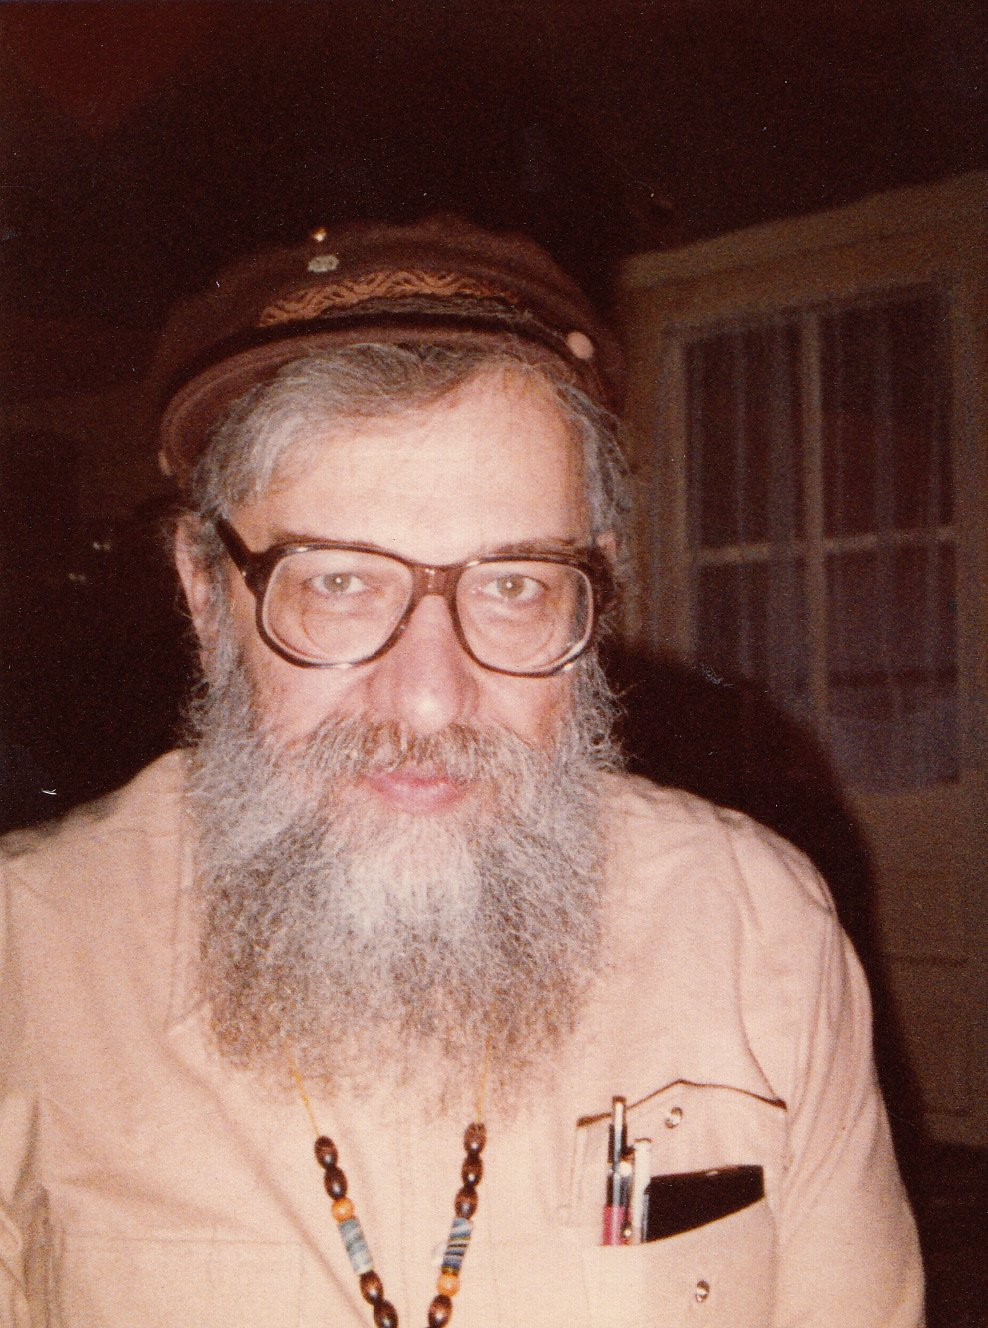 Rabbi Zalman Schachter-Shalomi in fisherman's cap, ca. 1980s.